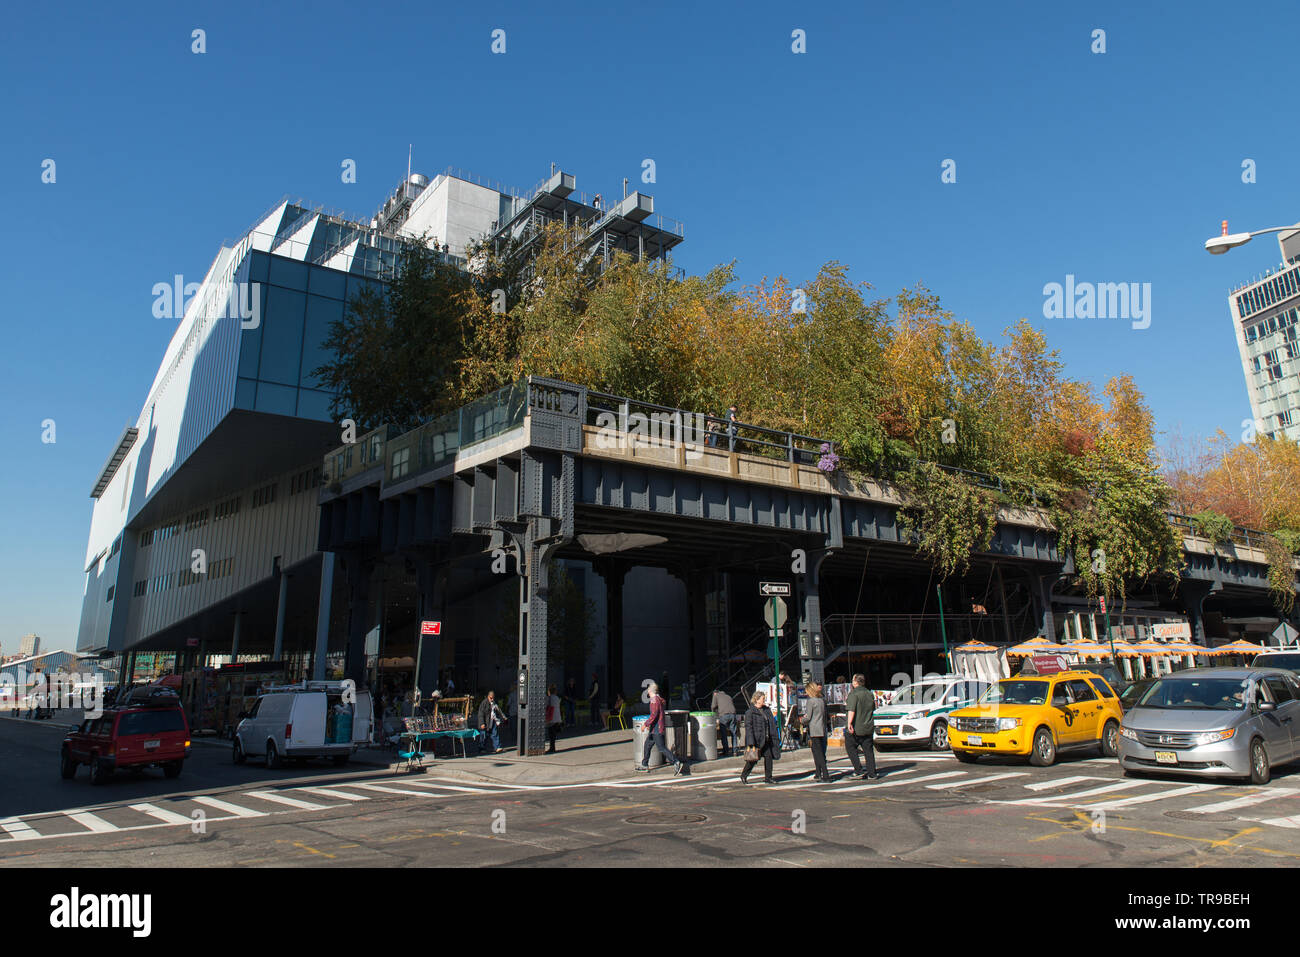 Die High Line in New York beginnt oder endet im Whitney Museum in der Innenstadt. // The High Line in New York starts or ends at the Whitney museum do - Stock Image